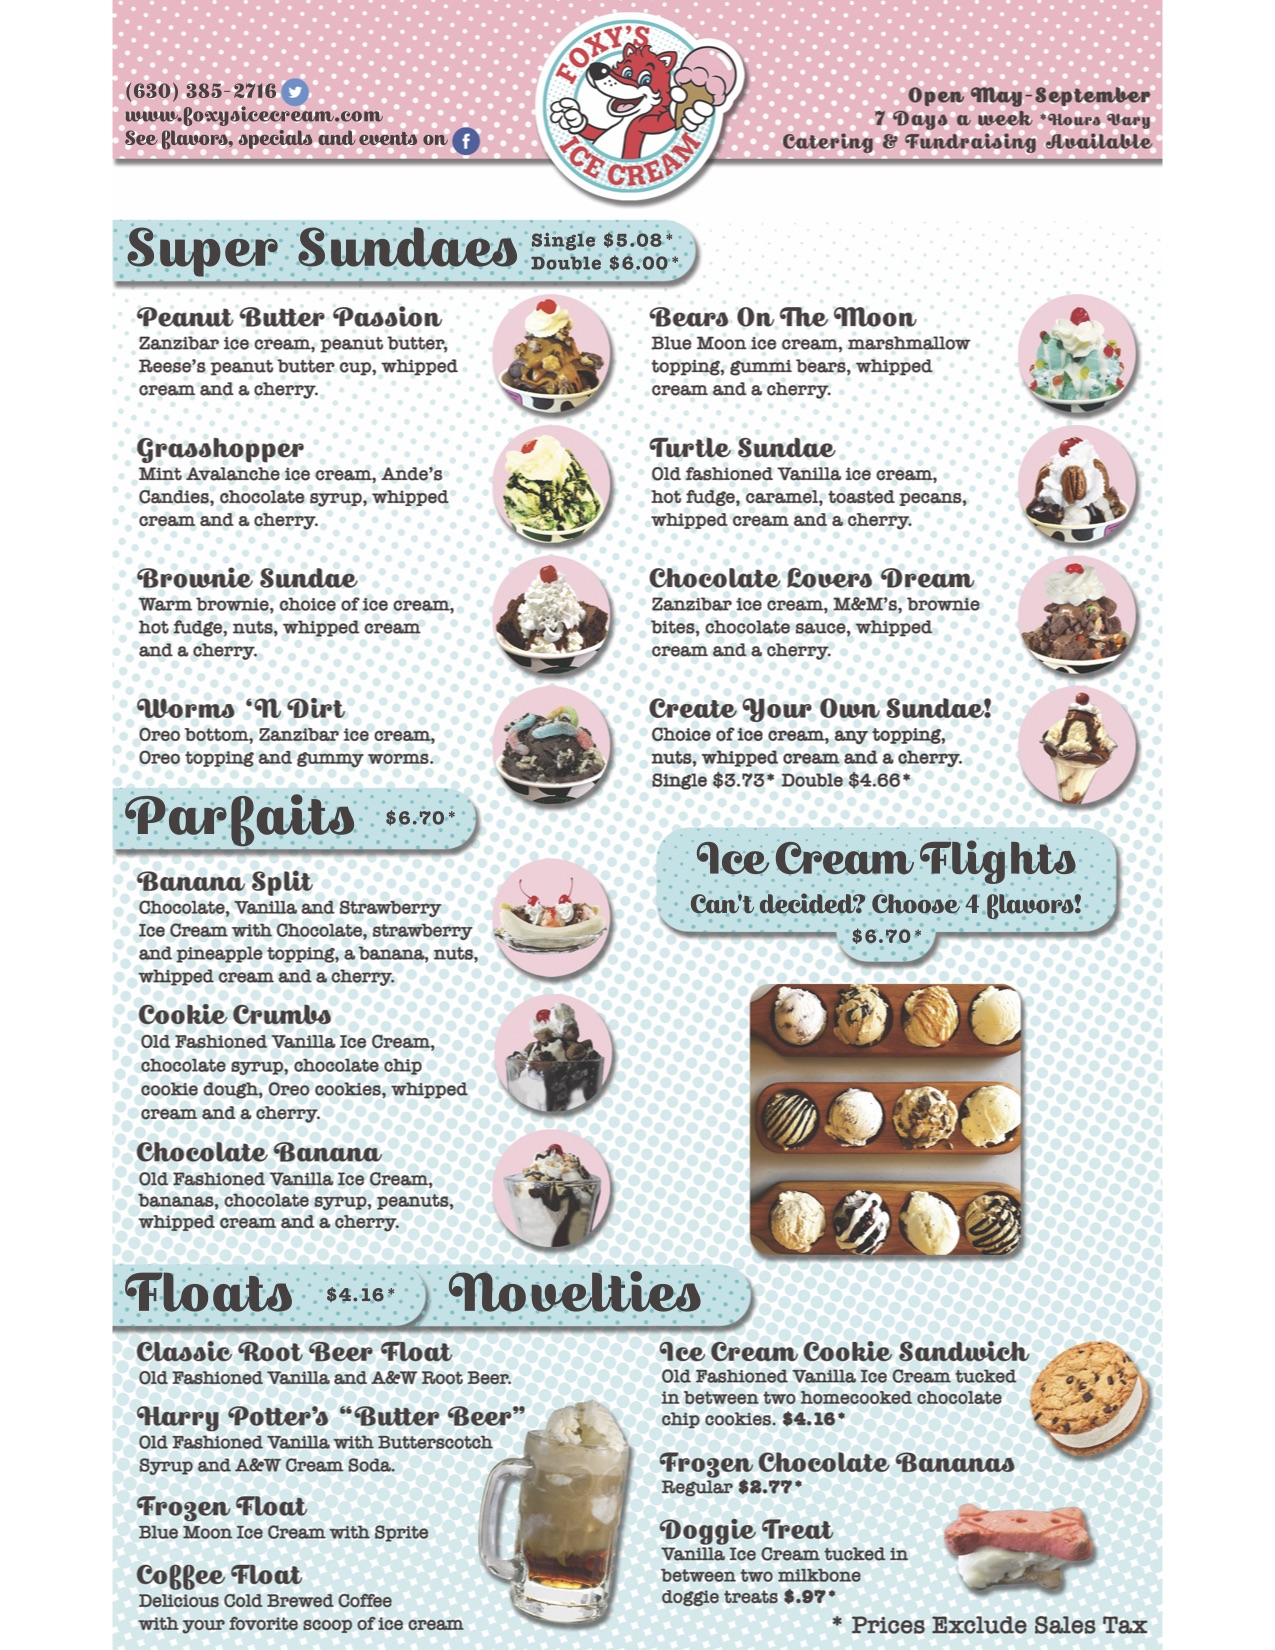 Icecream menu side A 2_11_20 jpeg